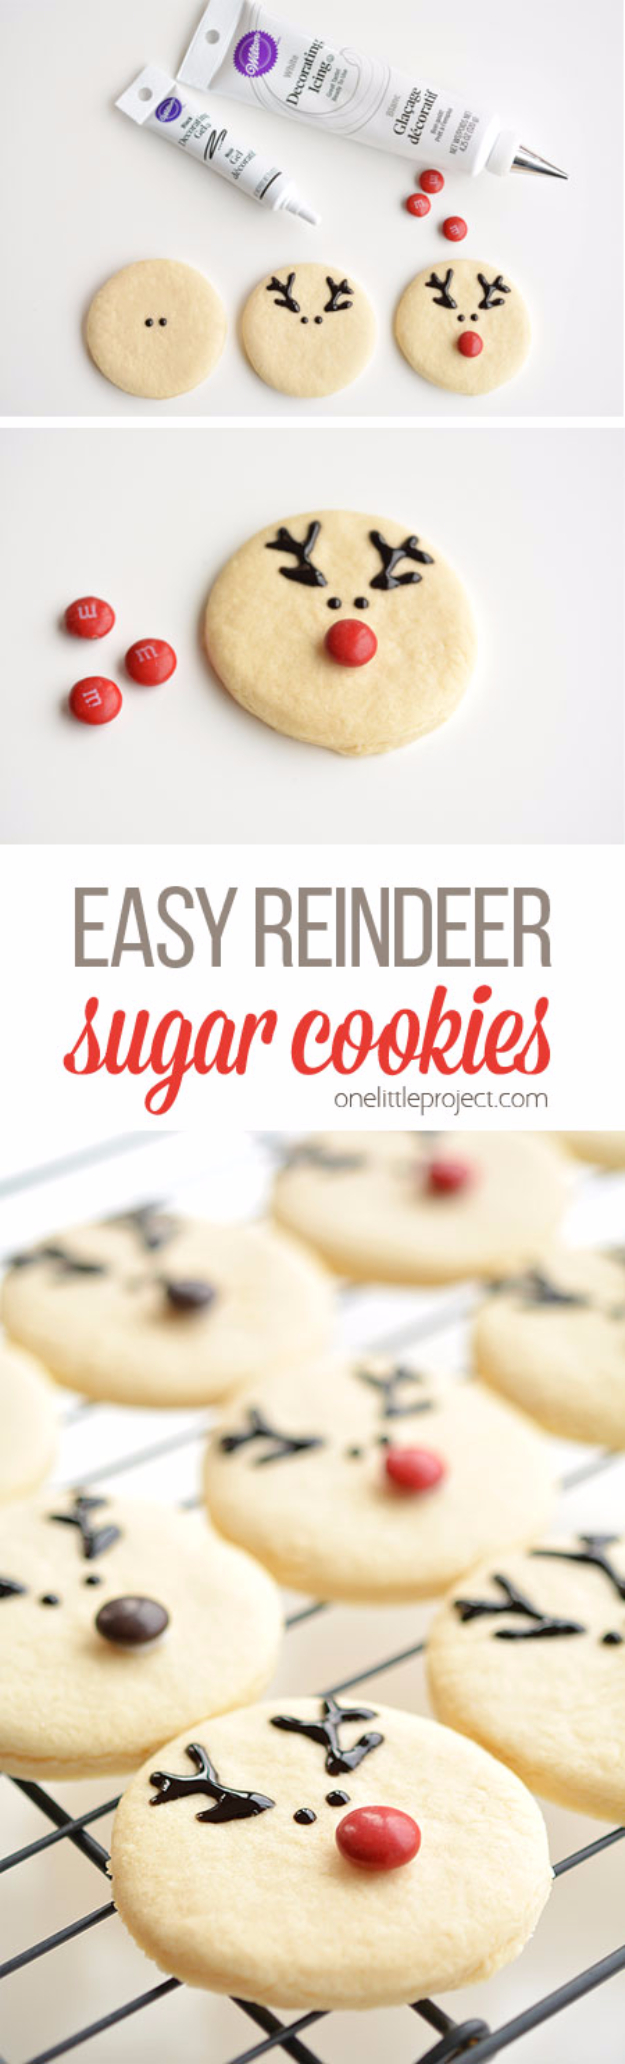 Best Recipes for Christmas Cookies- Easy Reindeer Sugar Cookies - Easy Decorated Holiday Cookies - Candy Cookie Recipes Ideas for Kids - Traditional Favorites and Gluten Free and Healthy Versions - Quick No Bake Cookies and Last Minute Desserts for the Holidays